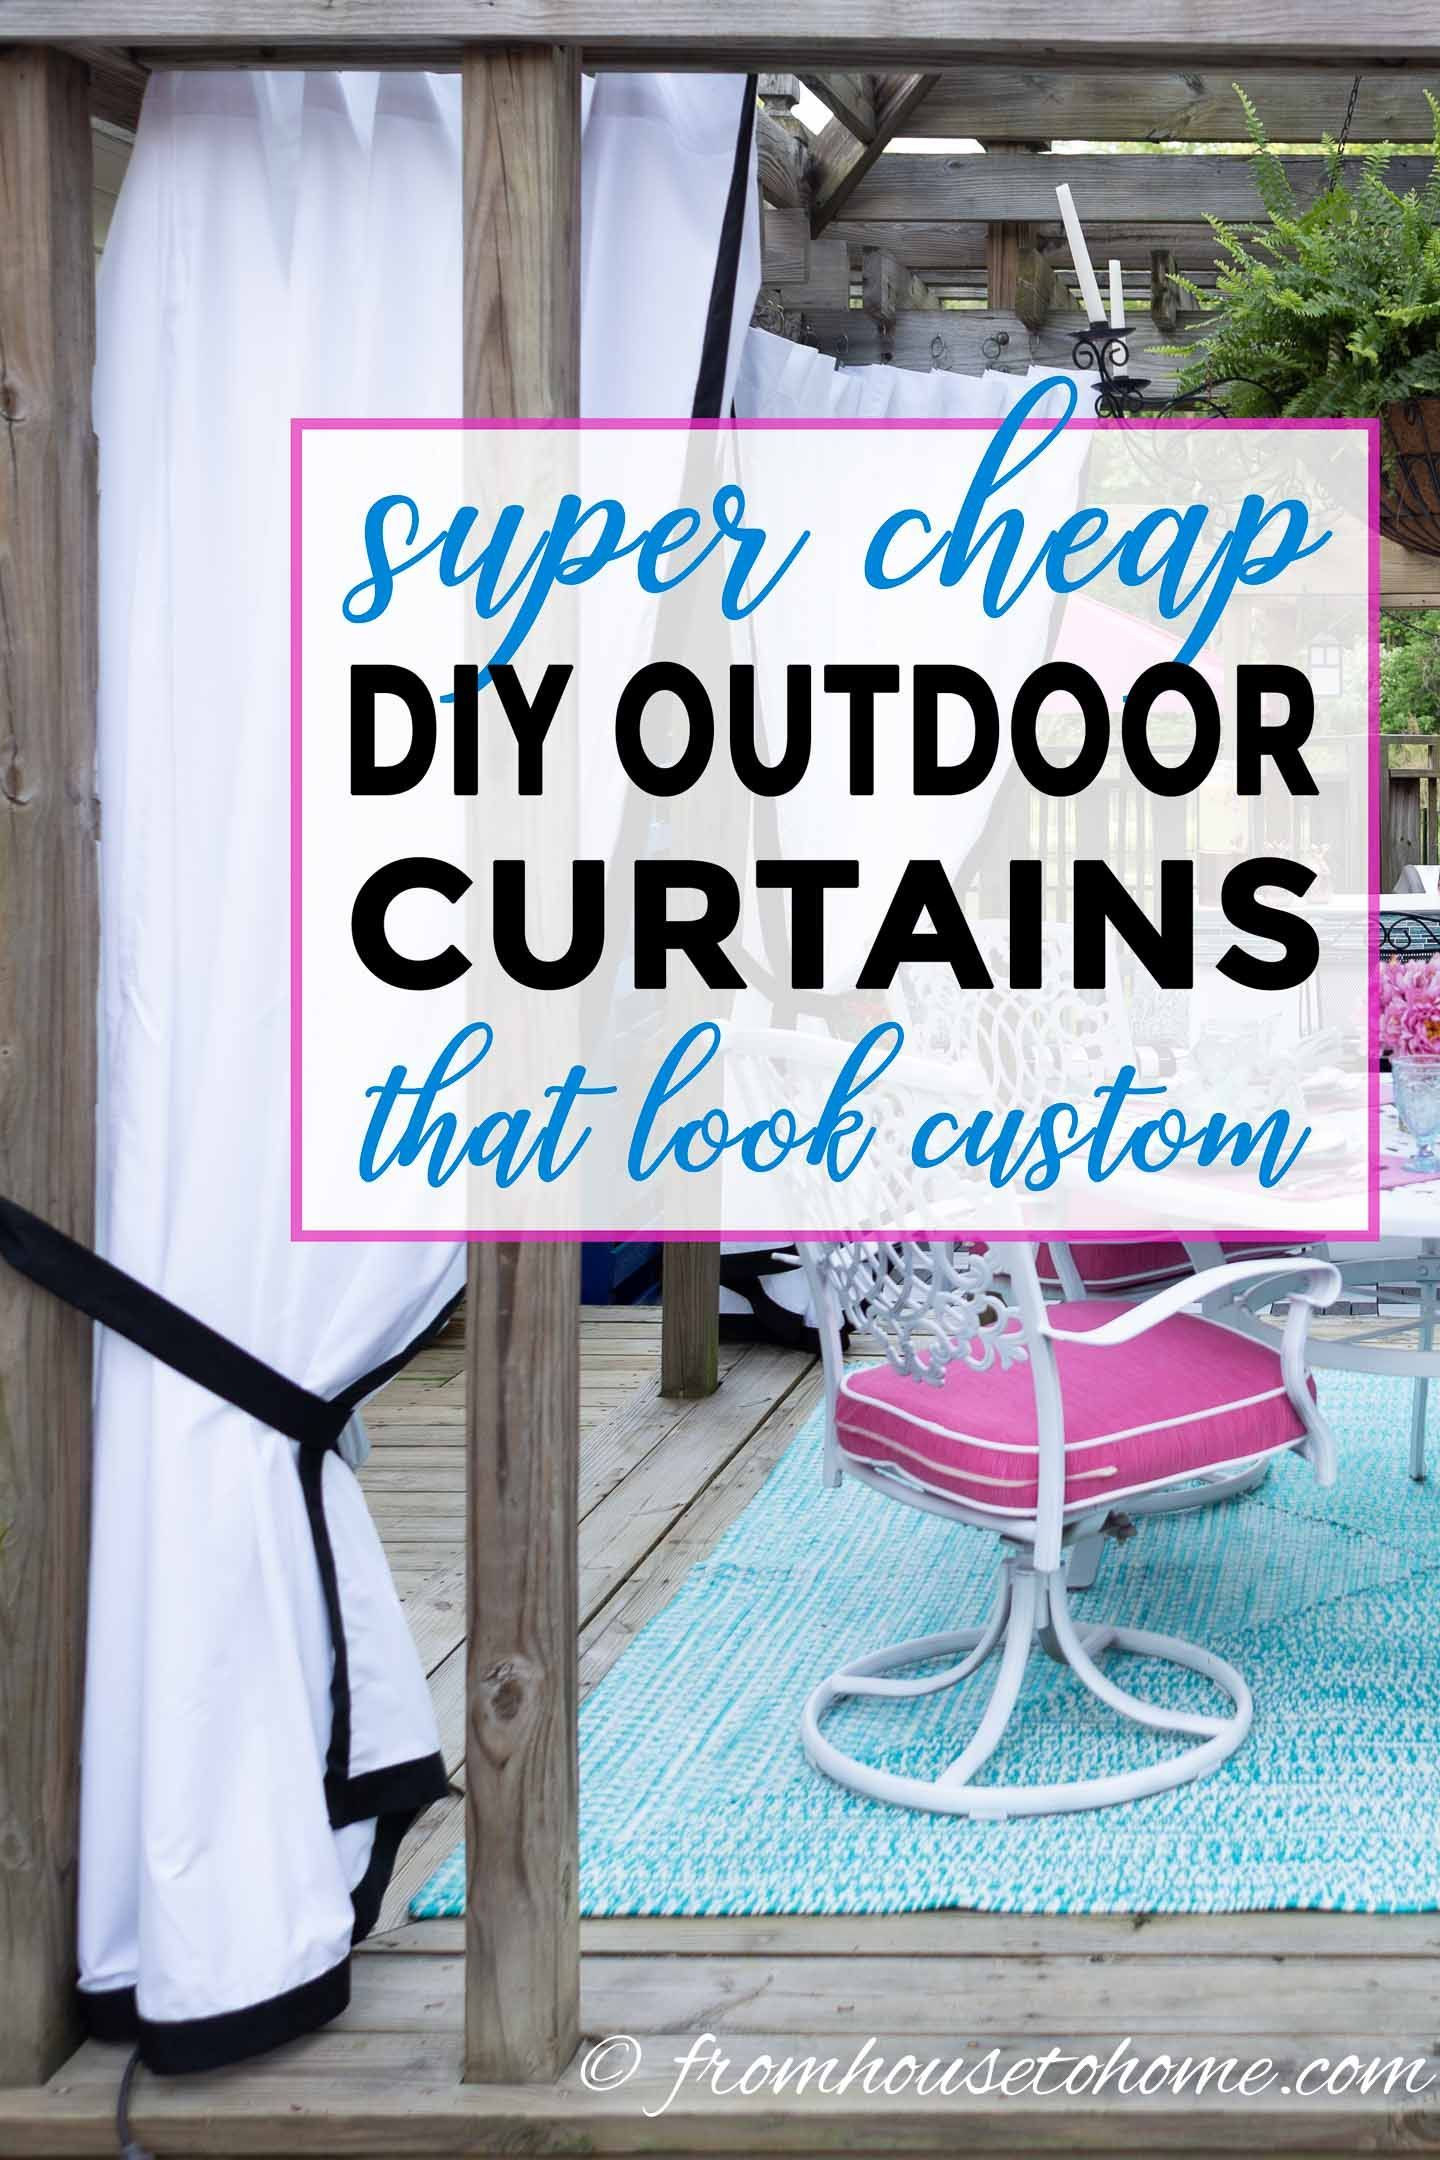 How To Make Inexpensive Diy Outdoor Curtains That Look Custom Outdoor Curtains Diy Outdoor Curtains For Patio Diy Backyard Patio